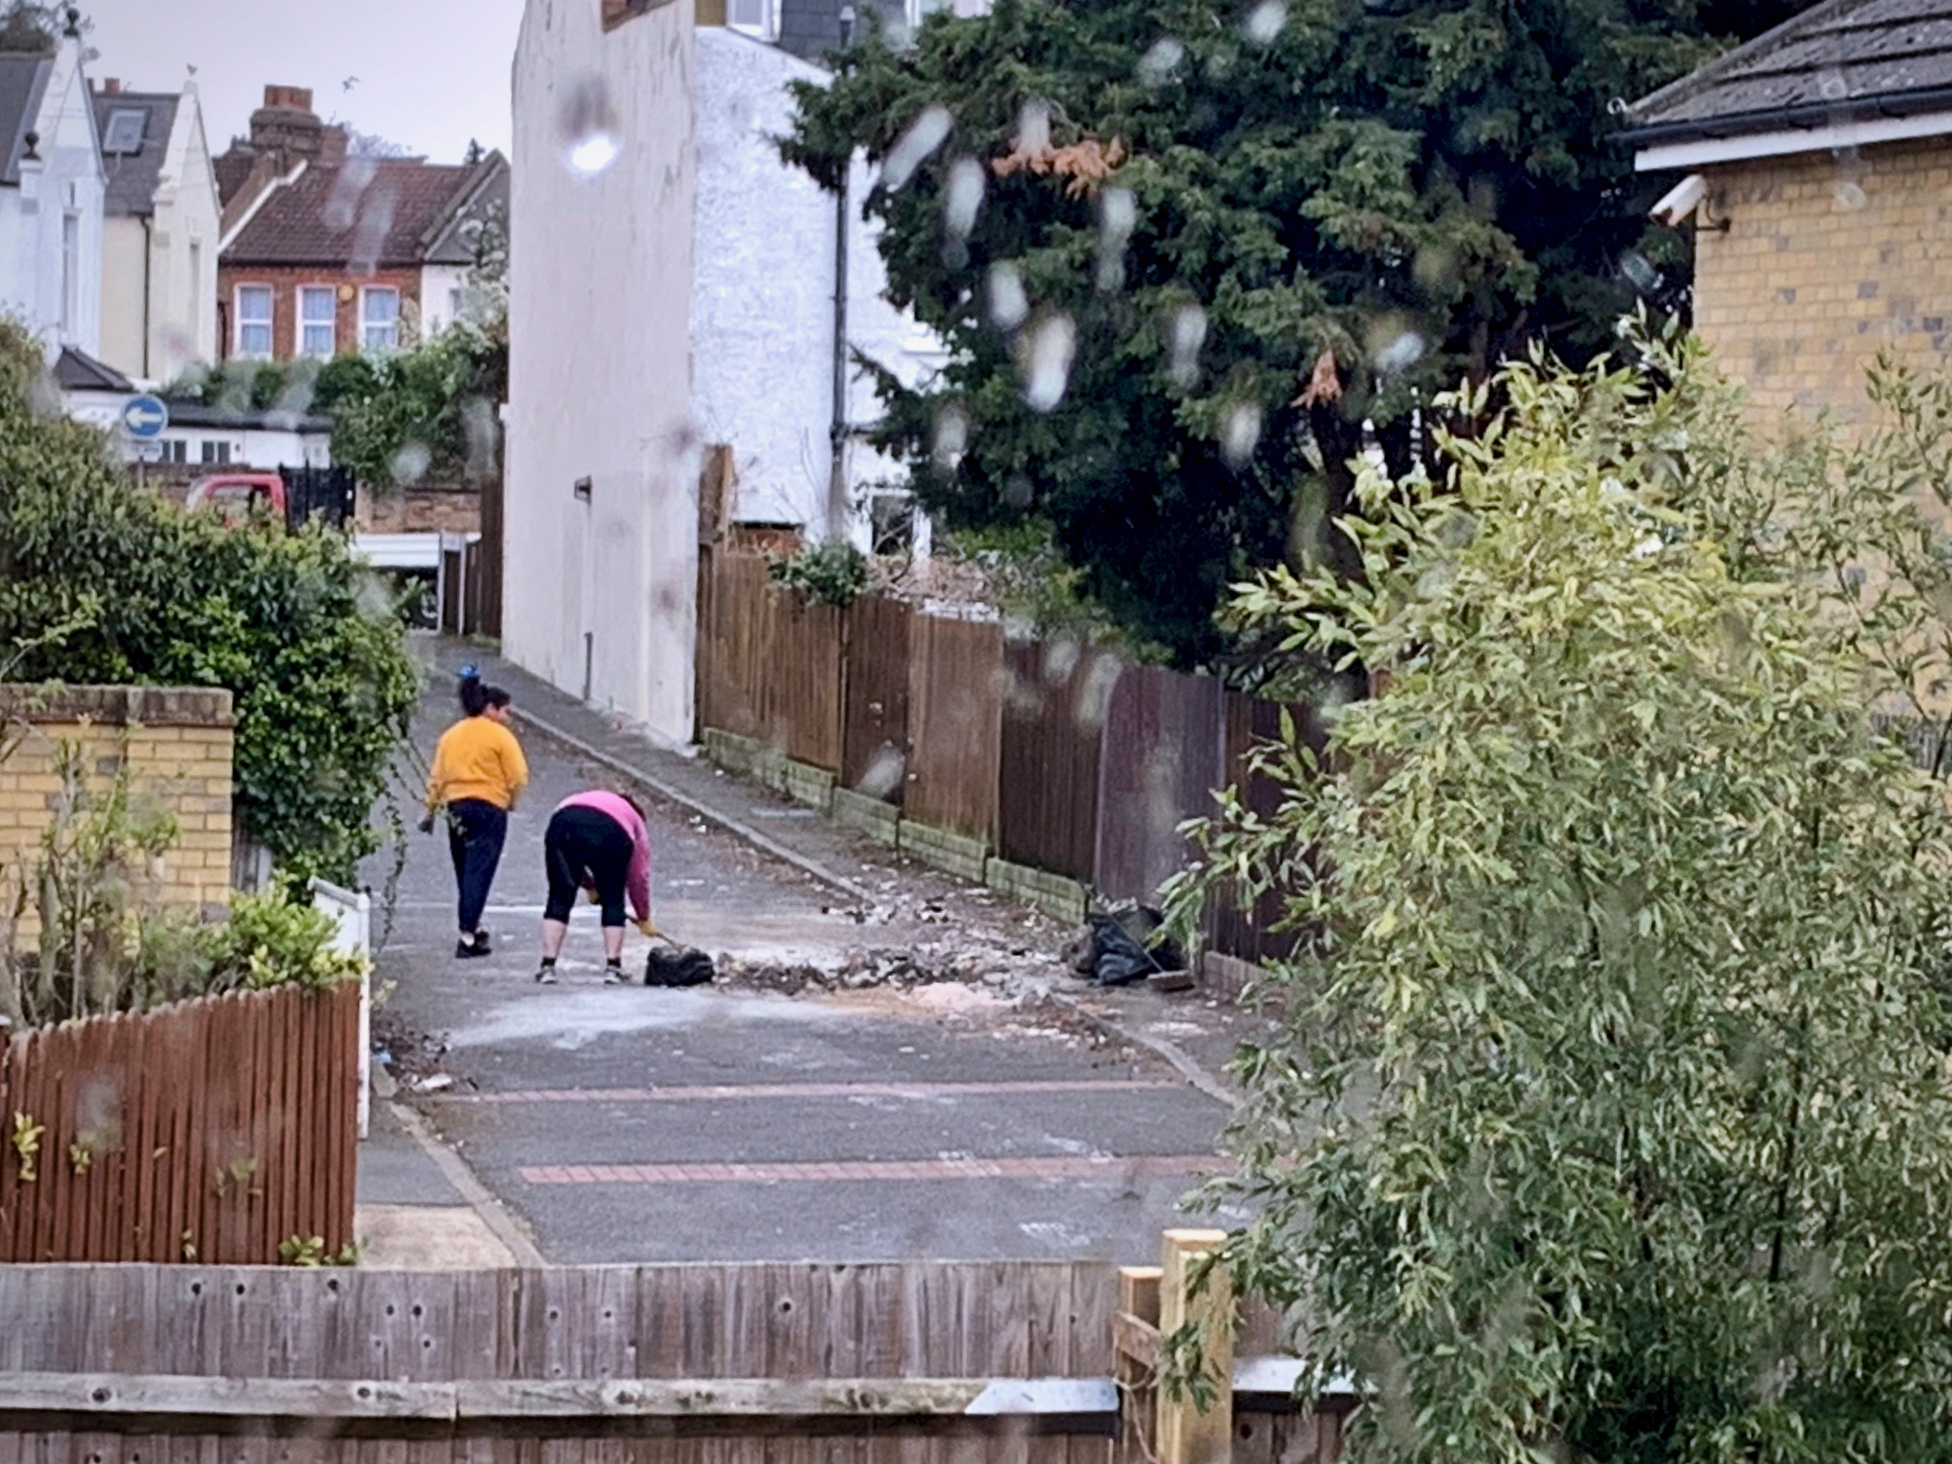 A week after the load was dumped, some very neighbourly people try and remove the remnants of the debris that coats the road.